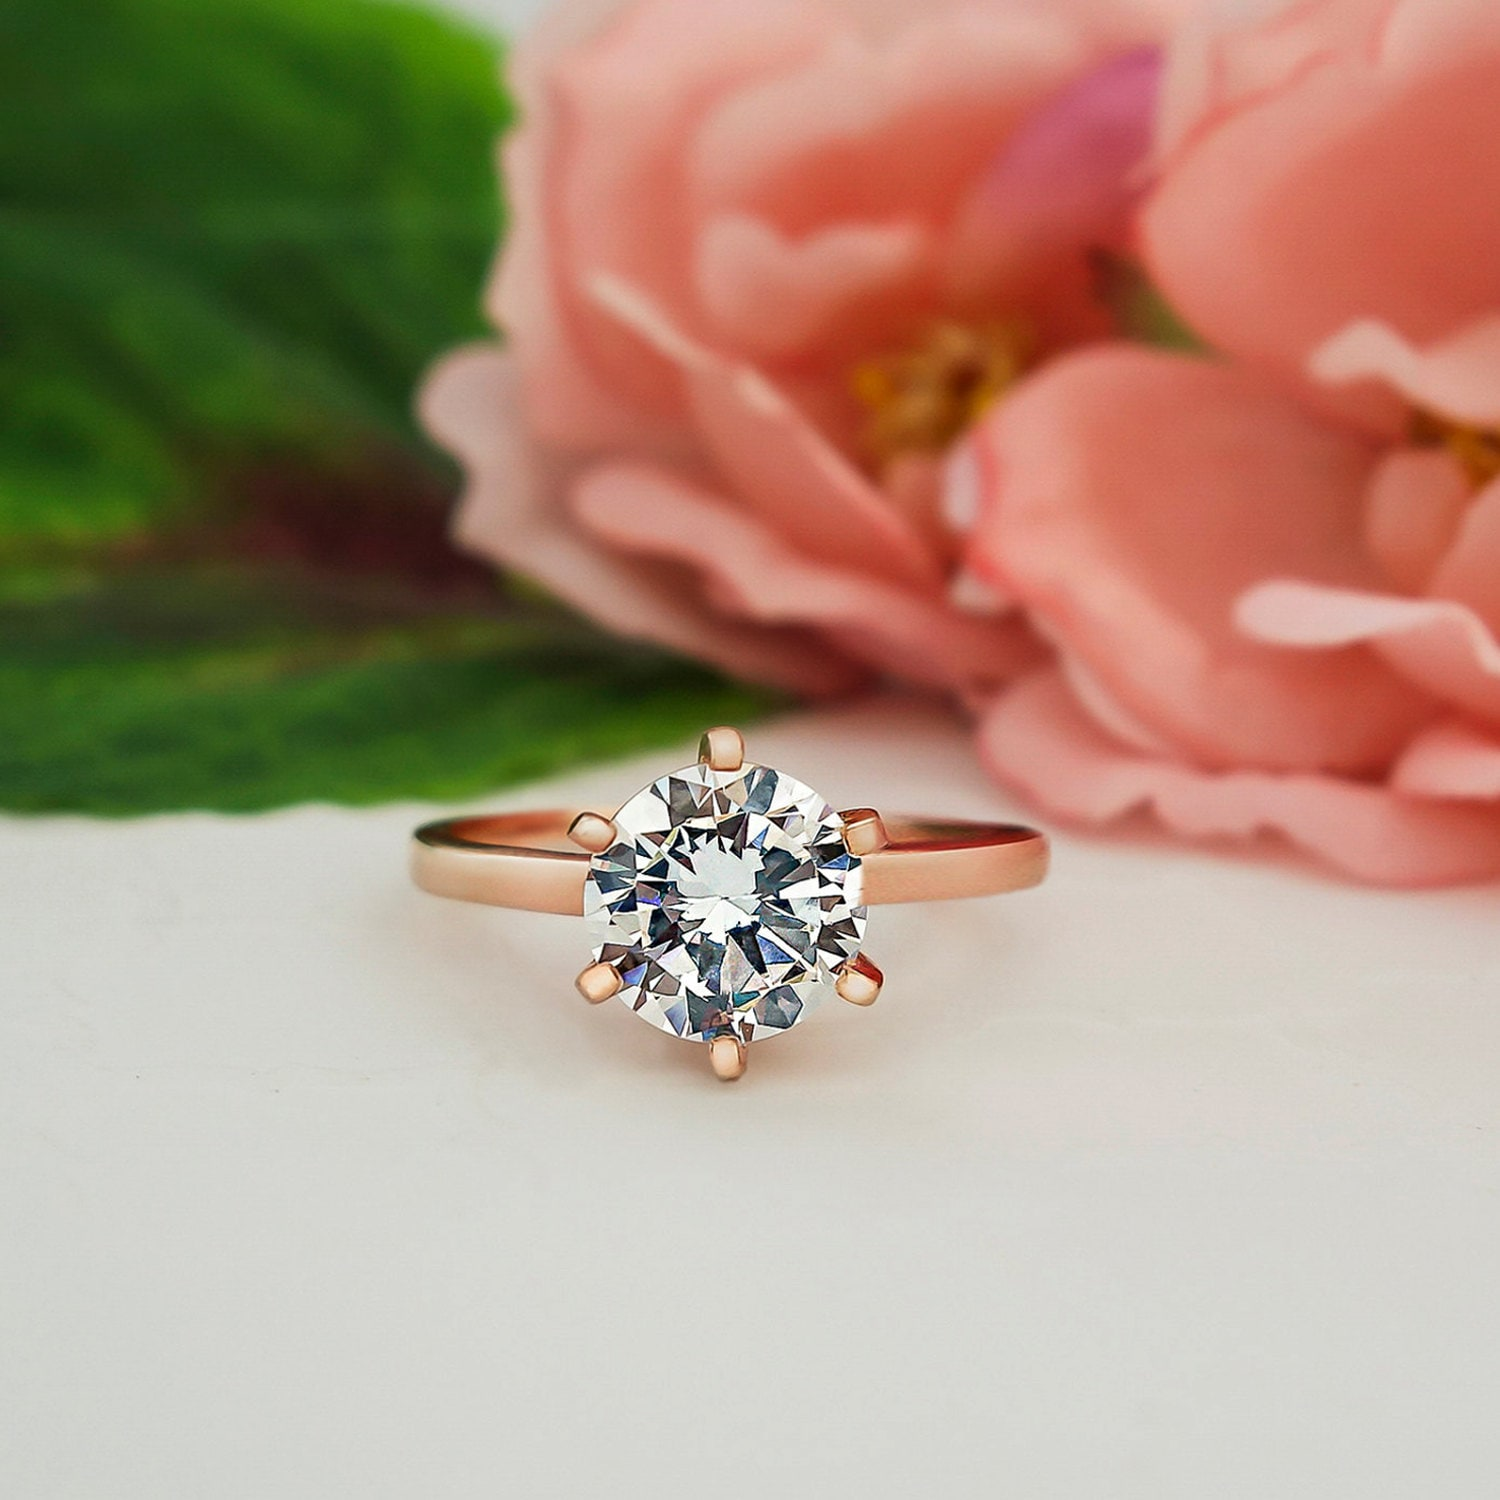 rings engagement ring solitaire prong jewelry sarkisians product